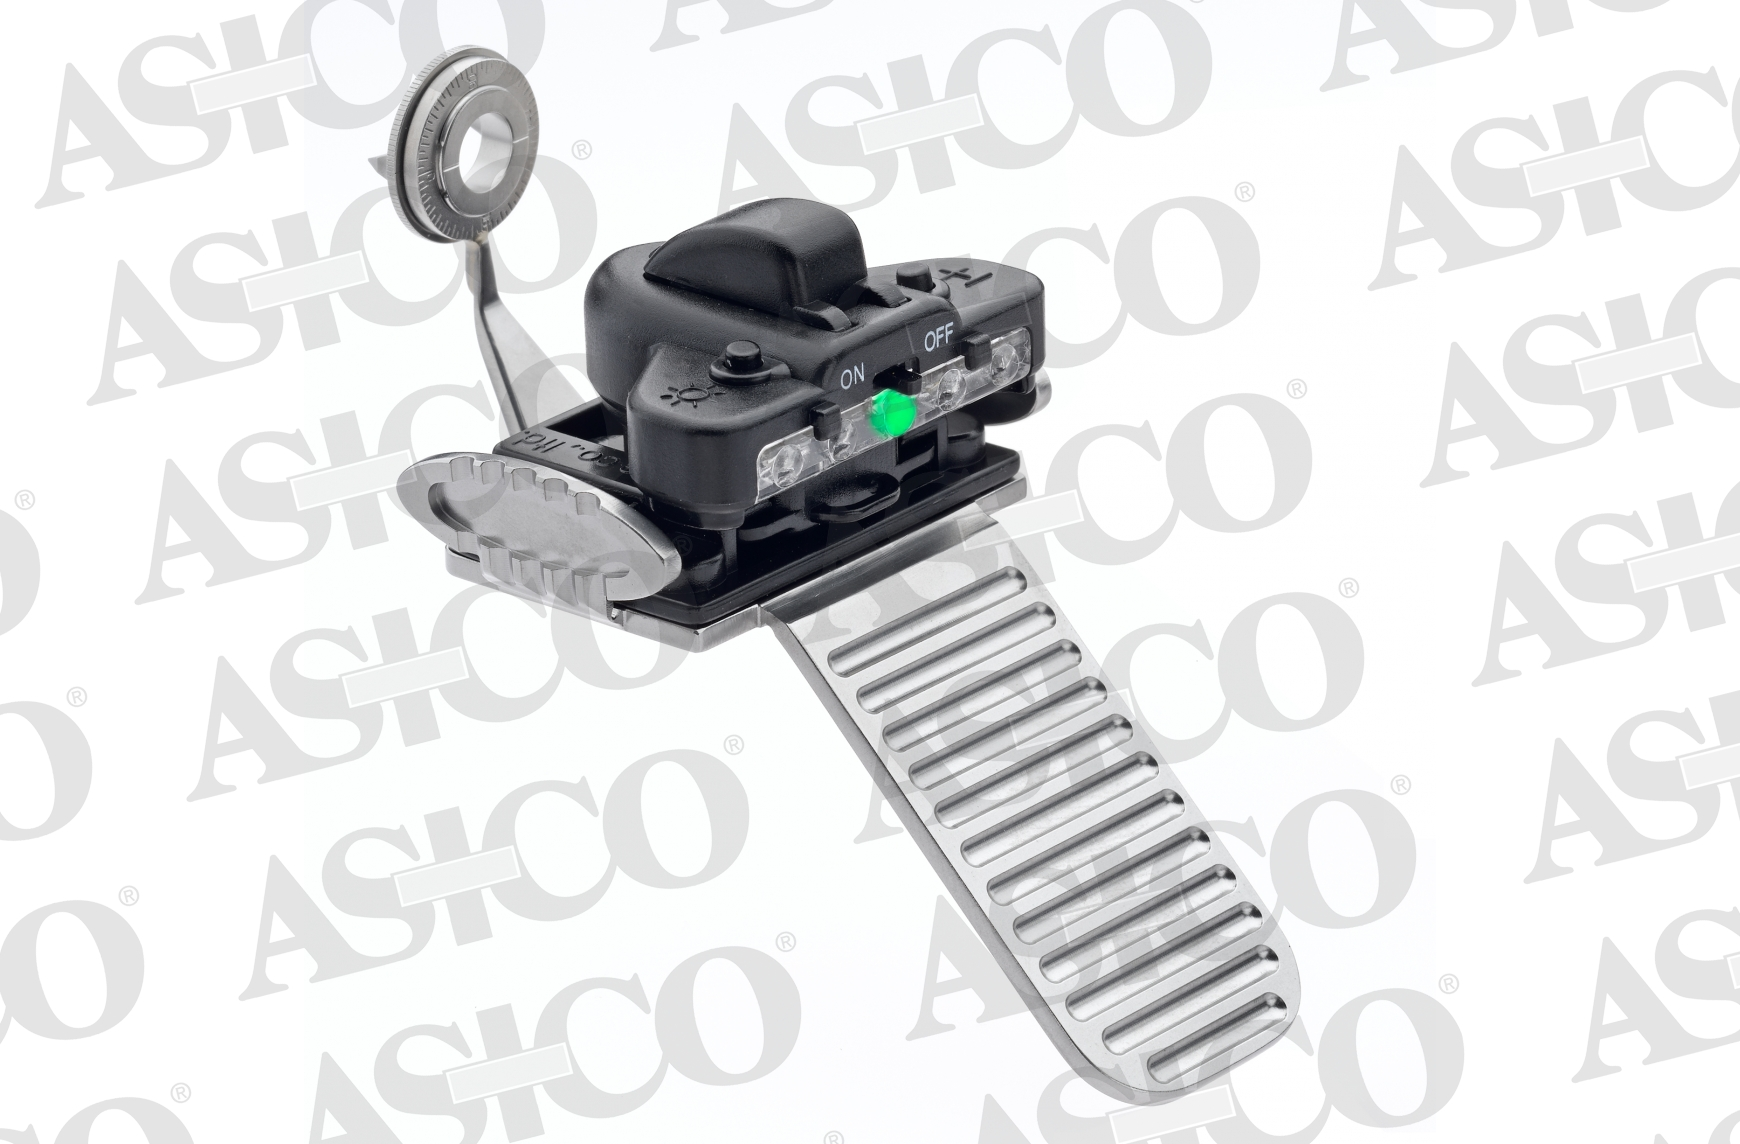 AXsys One Step Electronic Toric Marking Device